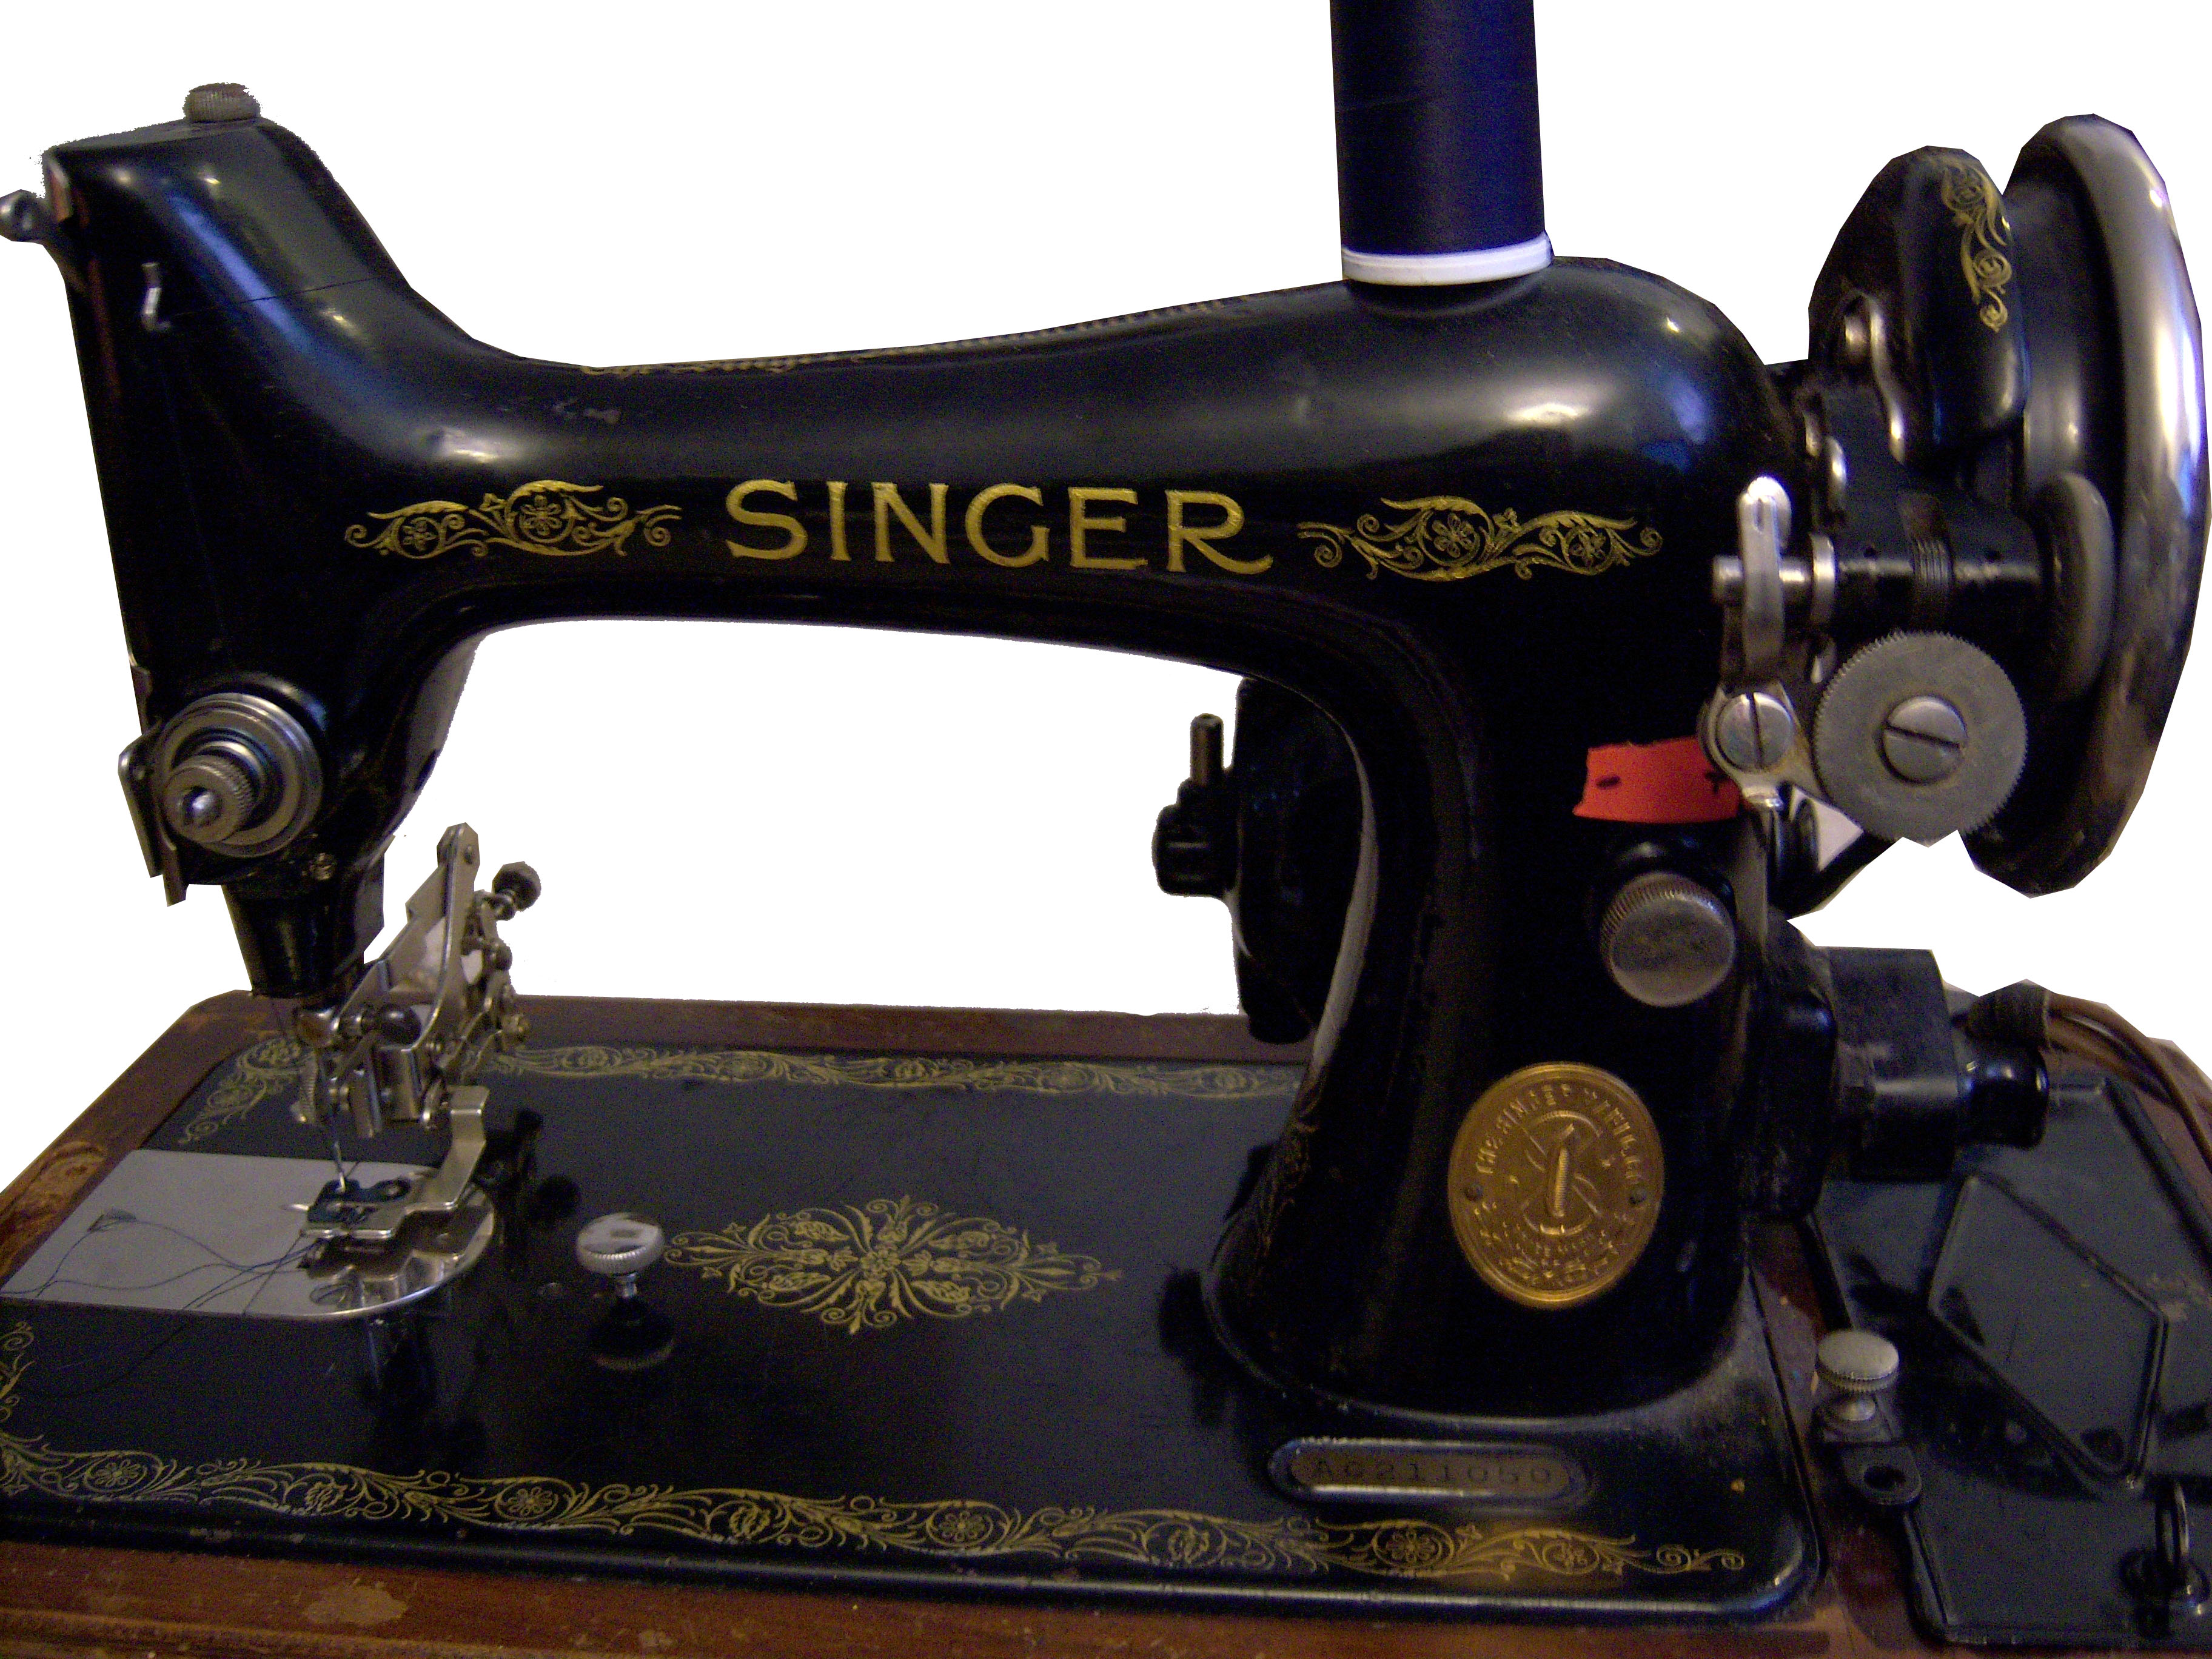 How to use a Singer Adjustable zigzag attatchment